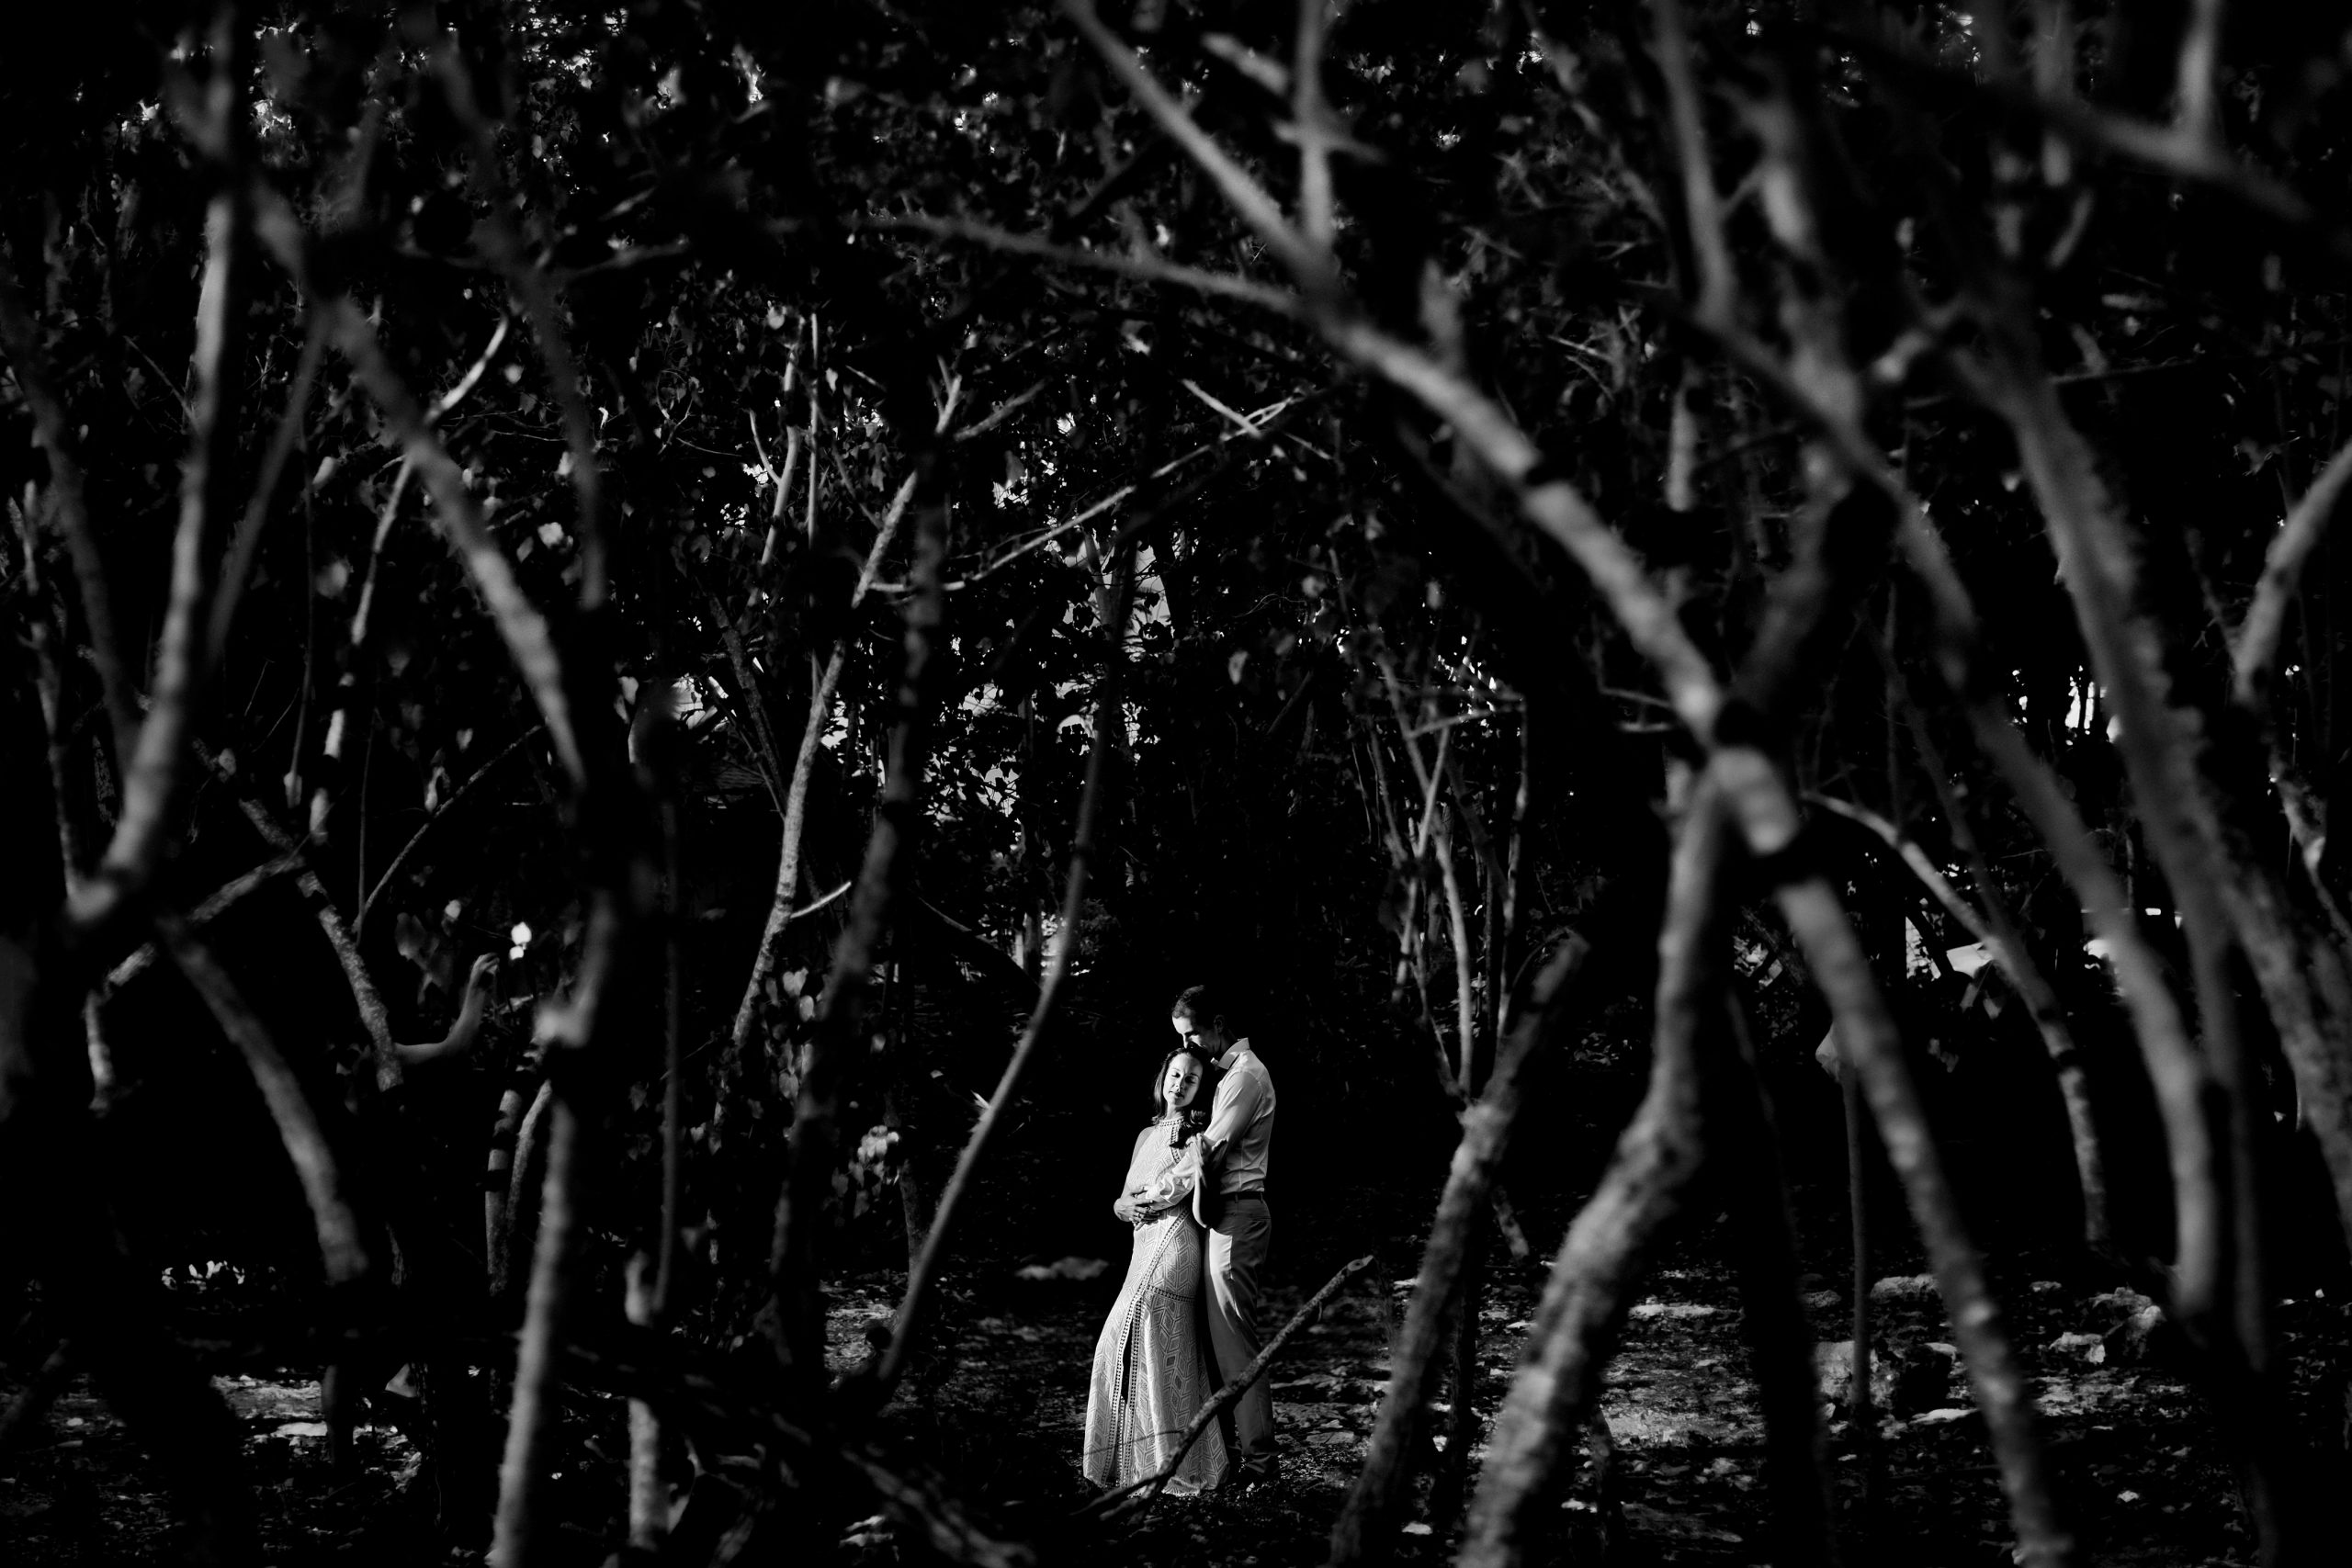 A groom embraces bride in a tropical forest at night